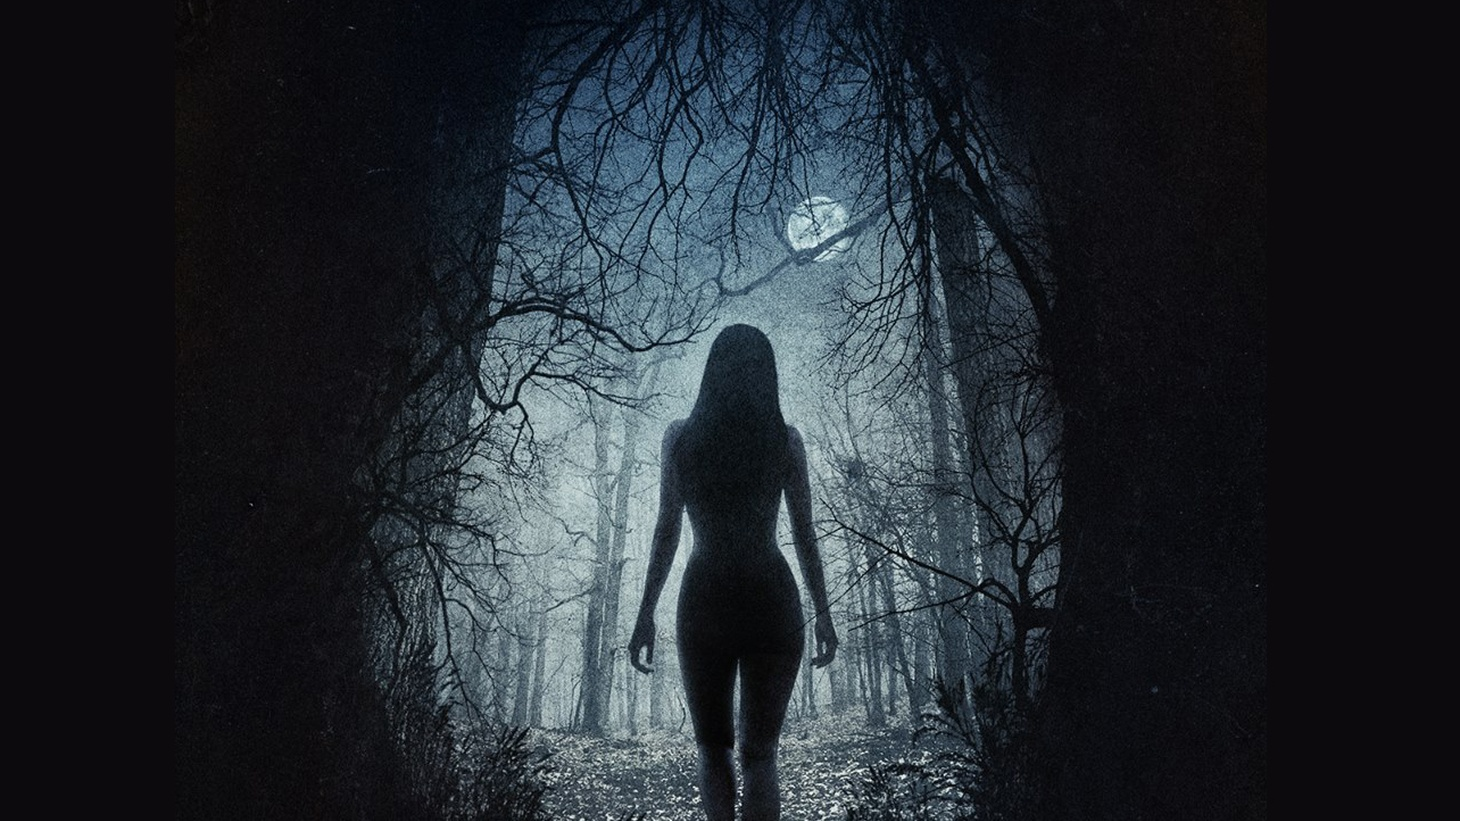 The Witch's psychodynamics may be familiar, but Robert Eggers makes them seem newly discovered with the intensity of his writing and direction. Race is a saga of unquenchable spirit and fast-twitch muscles shot in slow-twitch style.